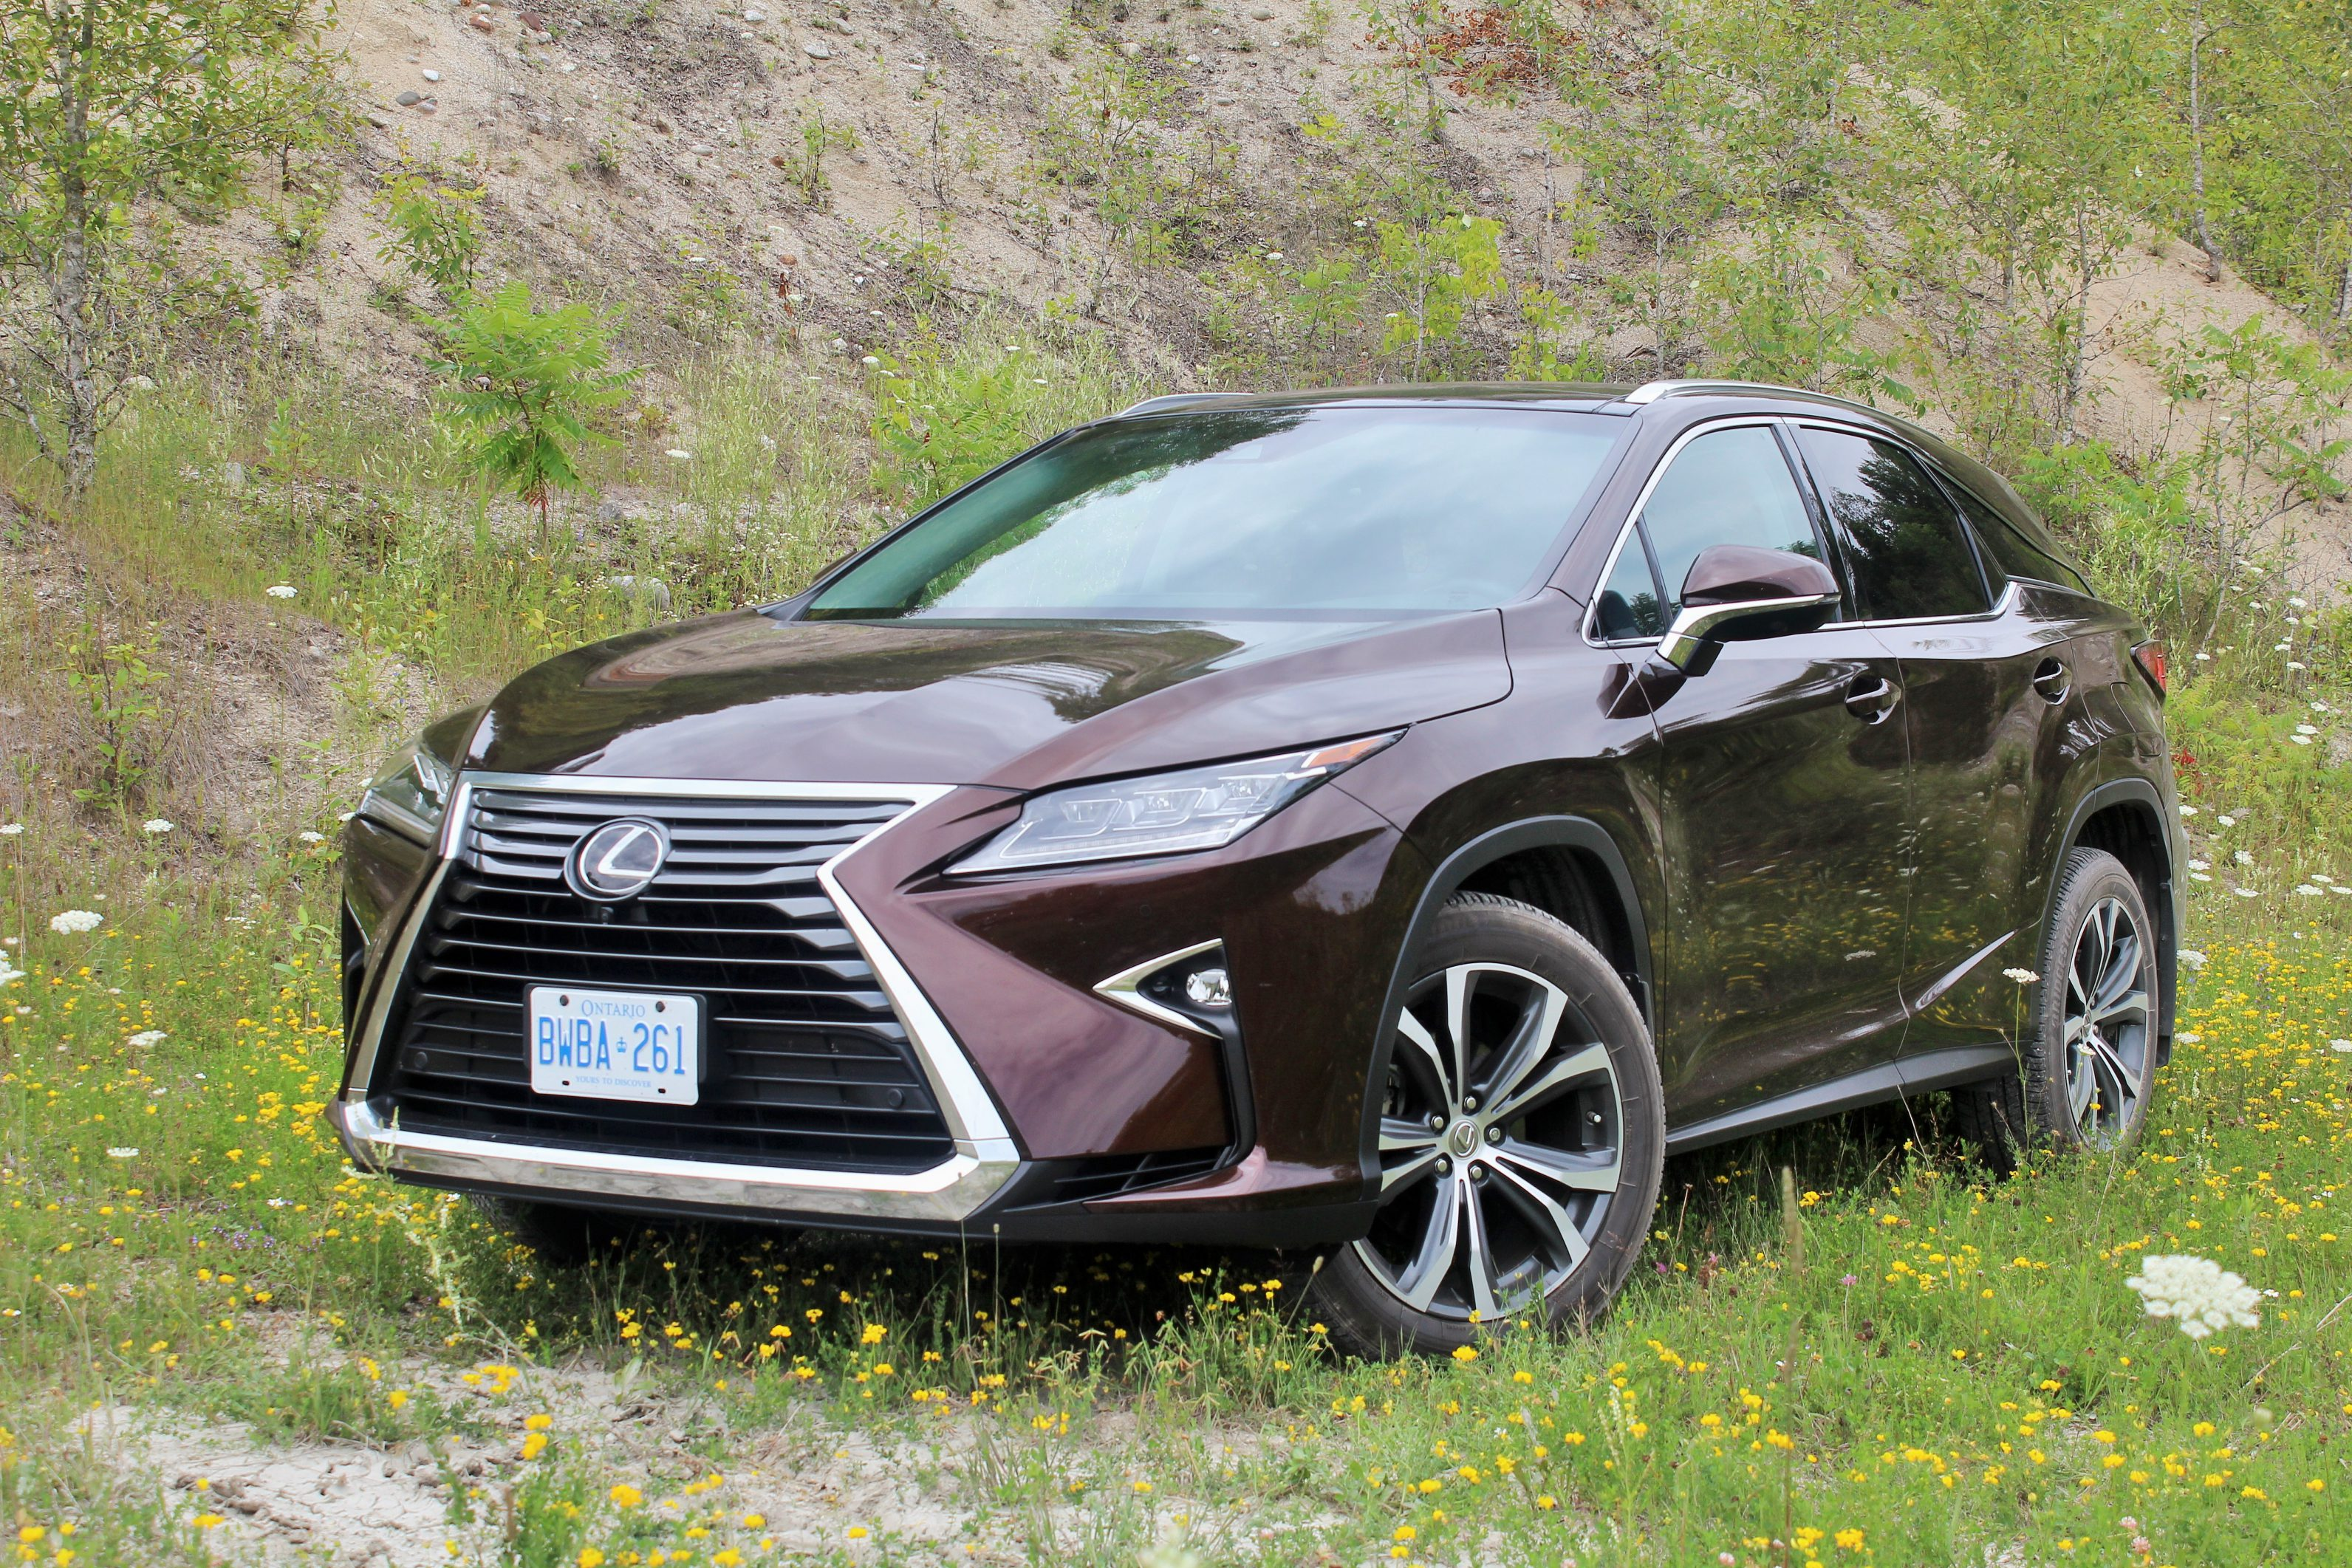 2016 lexus rx 350 awd review tradition in disguise the truth about cars